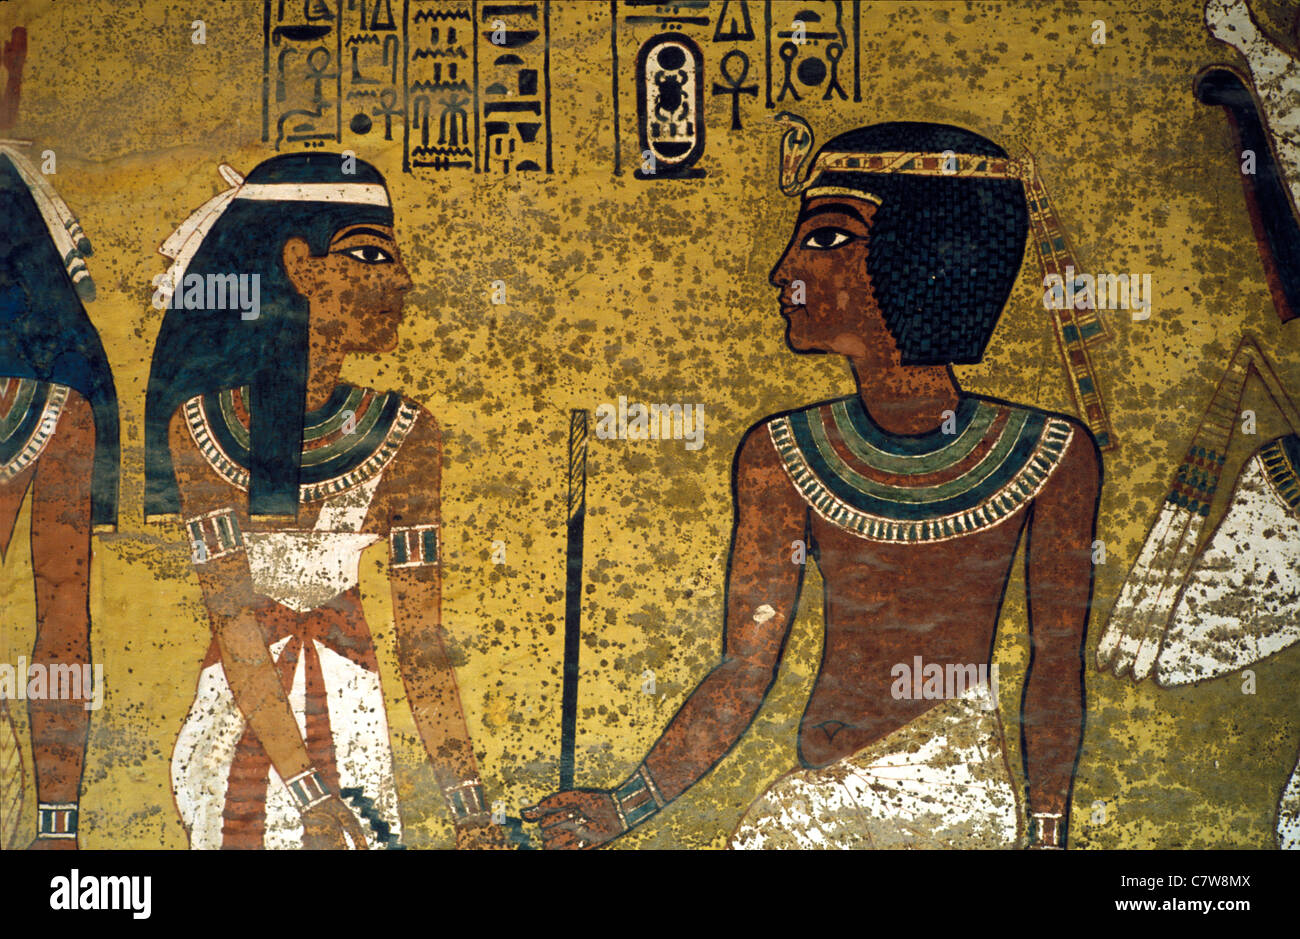 Wall paintings in the tomb of Tutankhamun, Valley of the Kings, Egypt - Stock Image